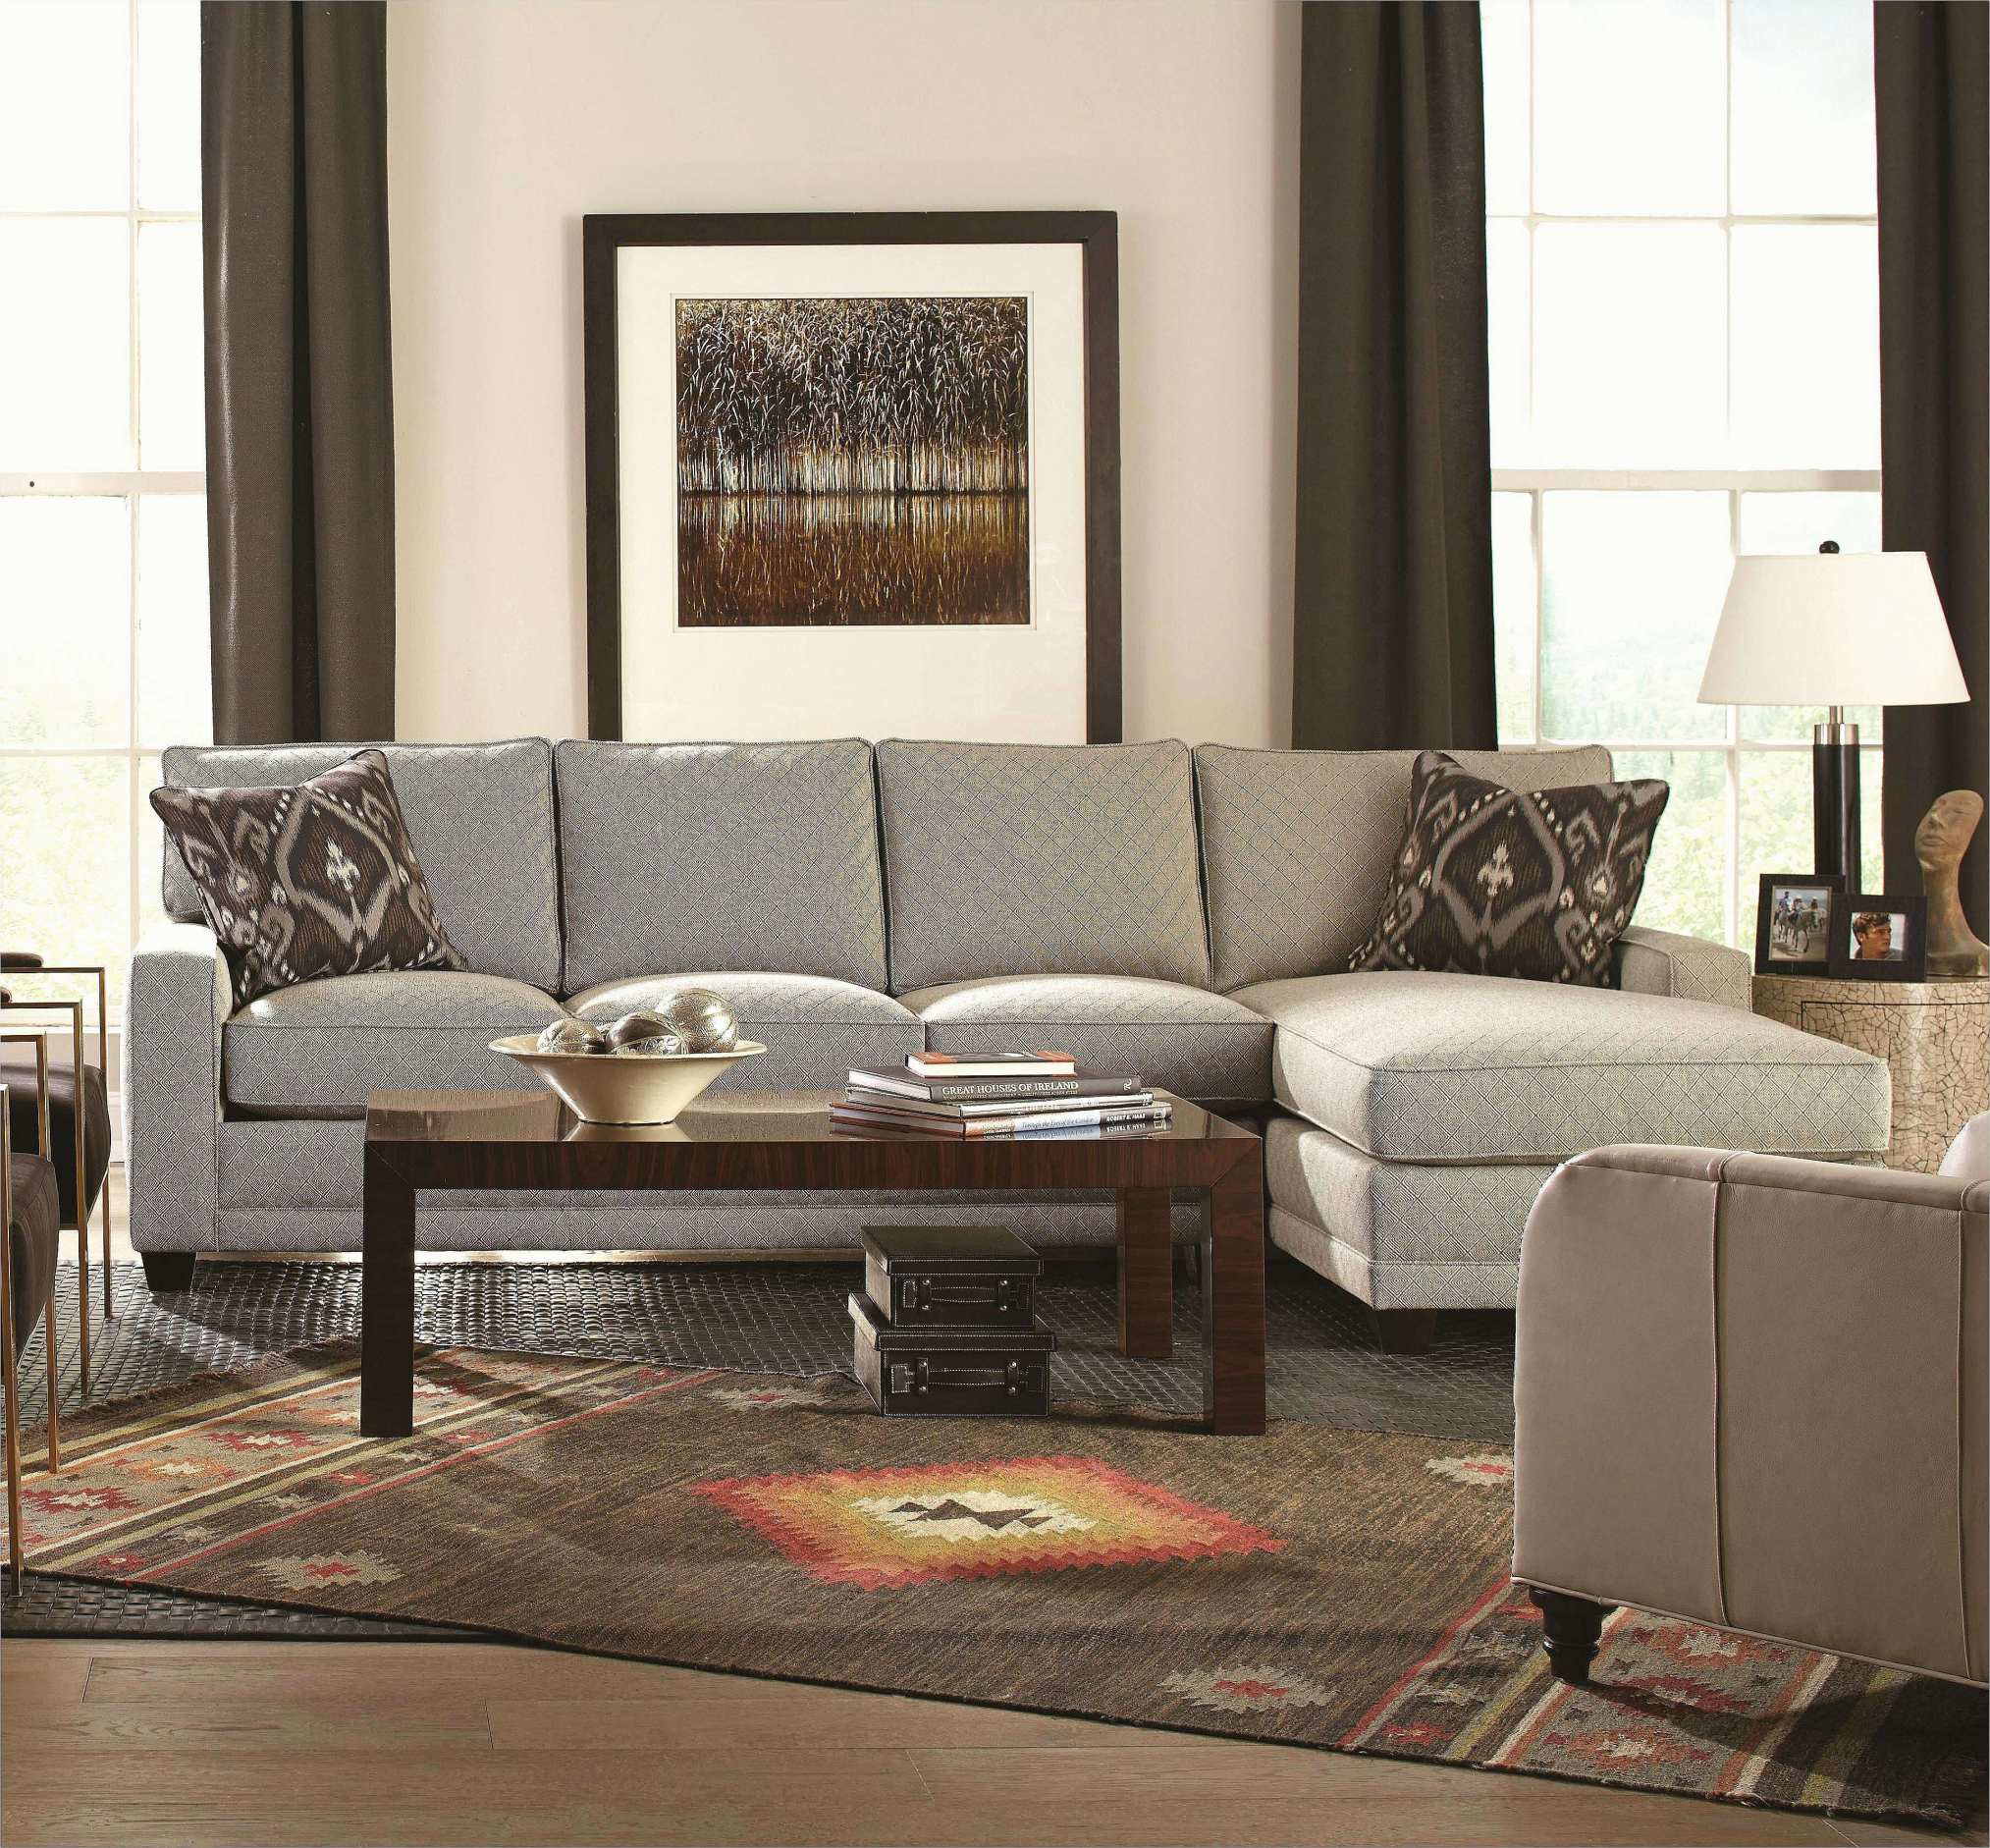 ashley furniture accent chairs also elegant dining plus ash room table beautiful antique with home design sofa set bangalore west elm round mirror ikea small coffee bathroom